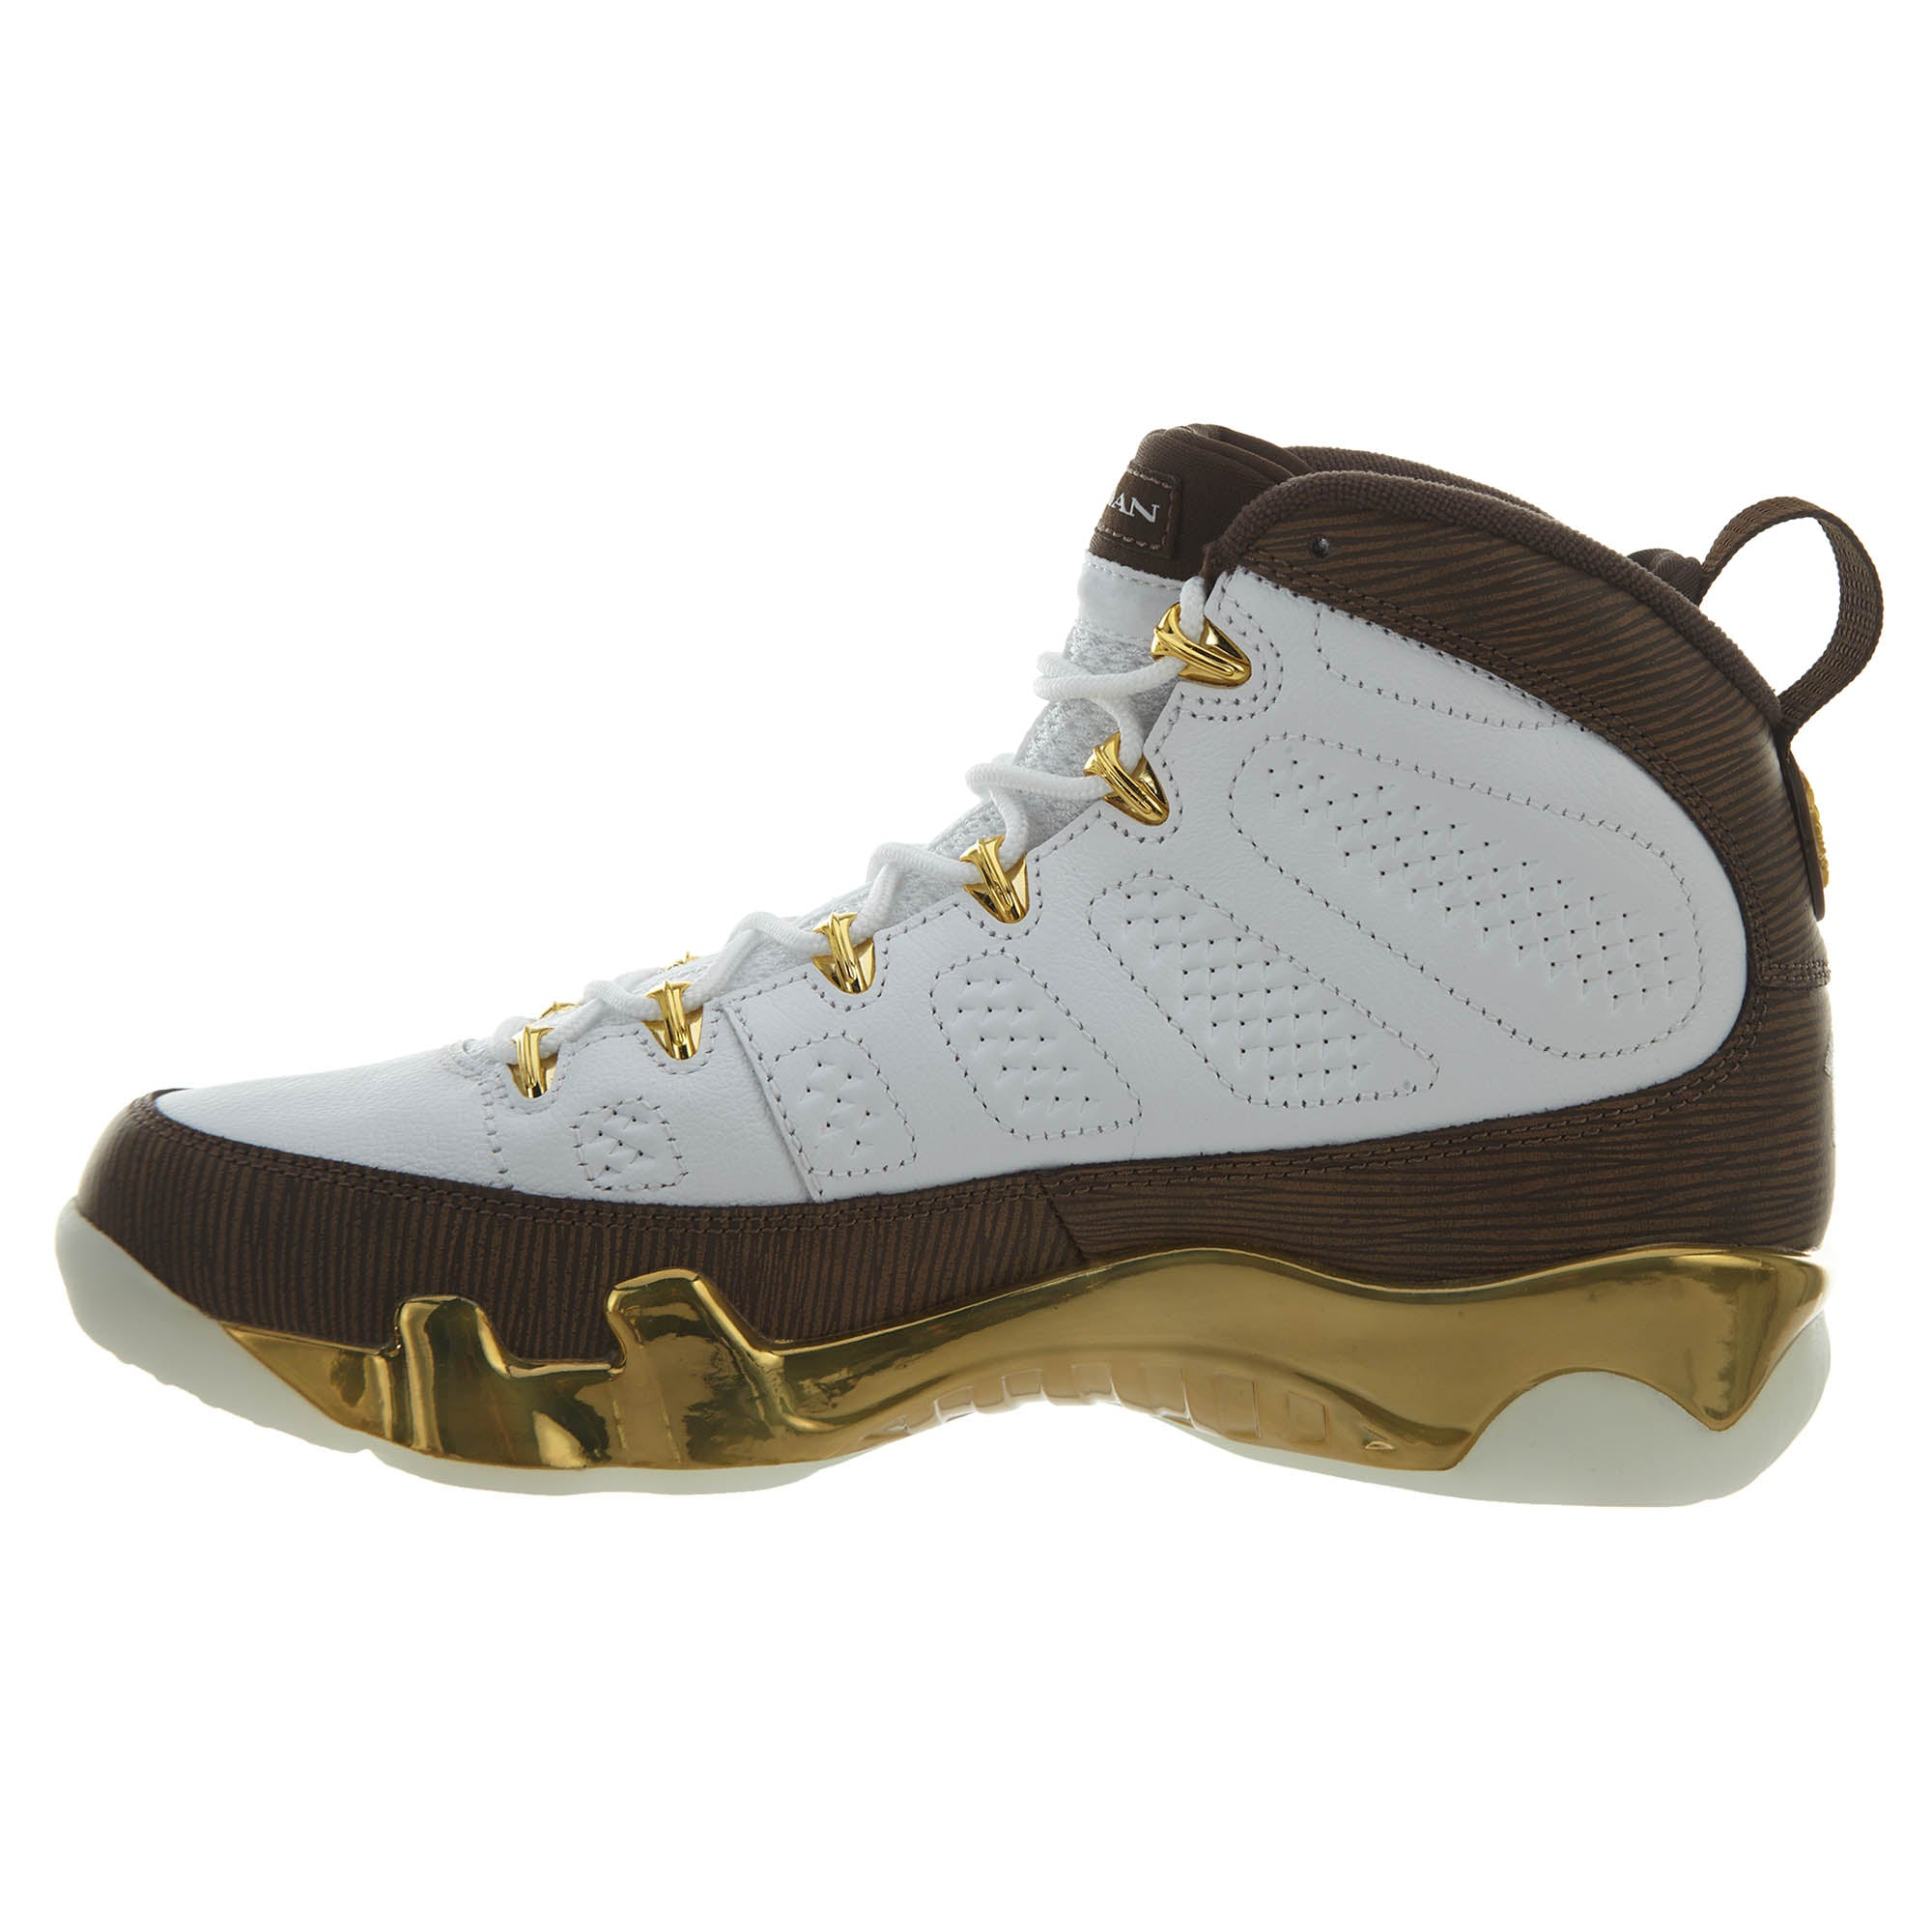 c9594899c433 Jordan 9 Retro Mop Melo Mens Style   302370. AIR JORDAN   Athletic Shoes    Sneakers